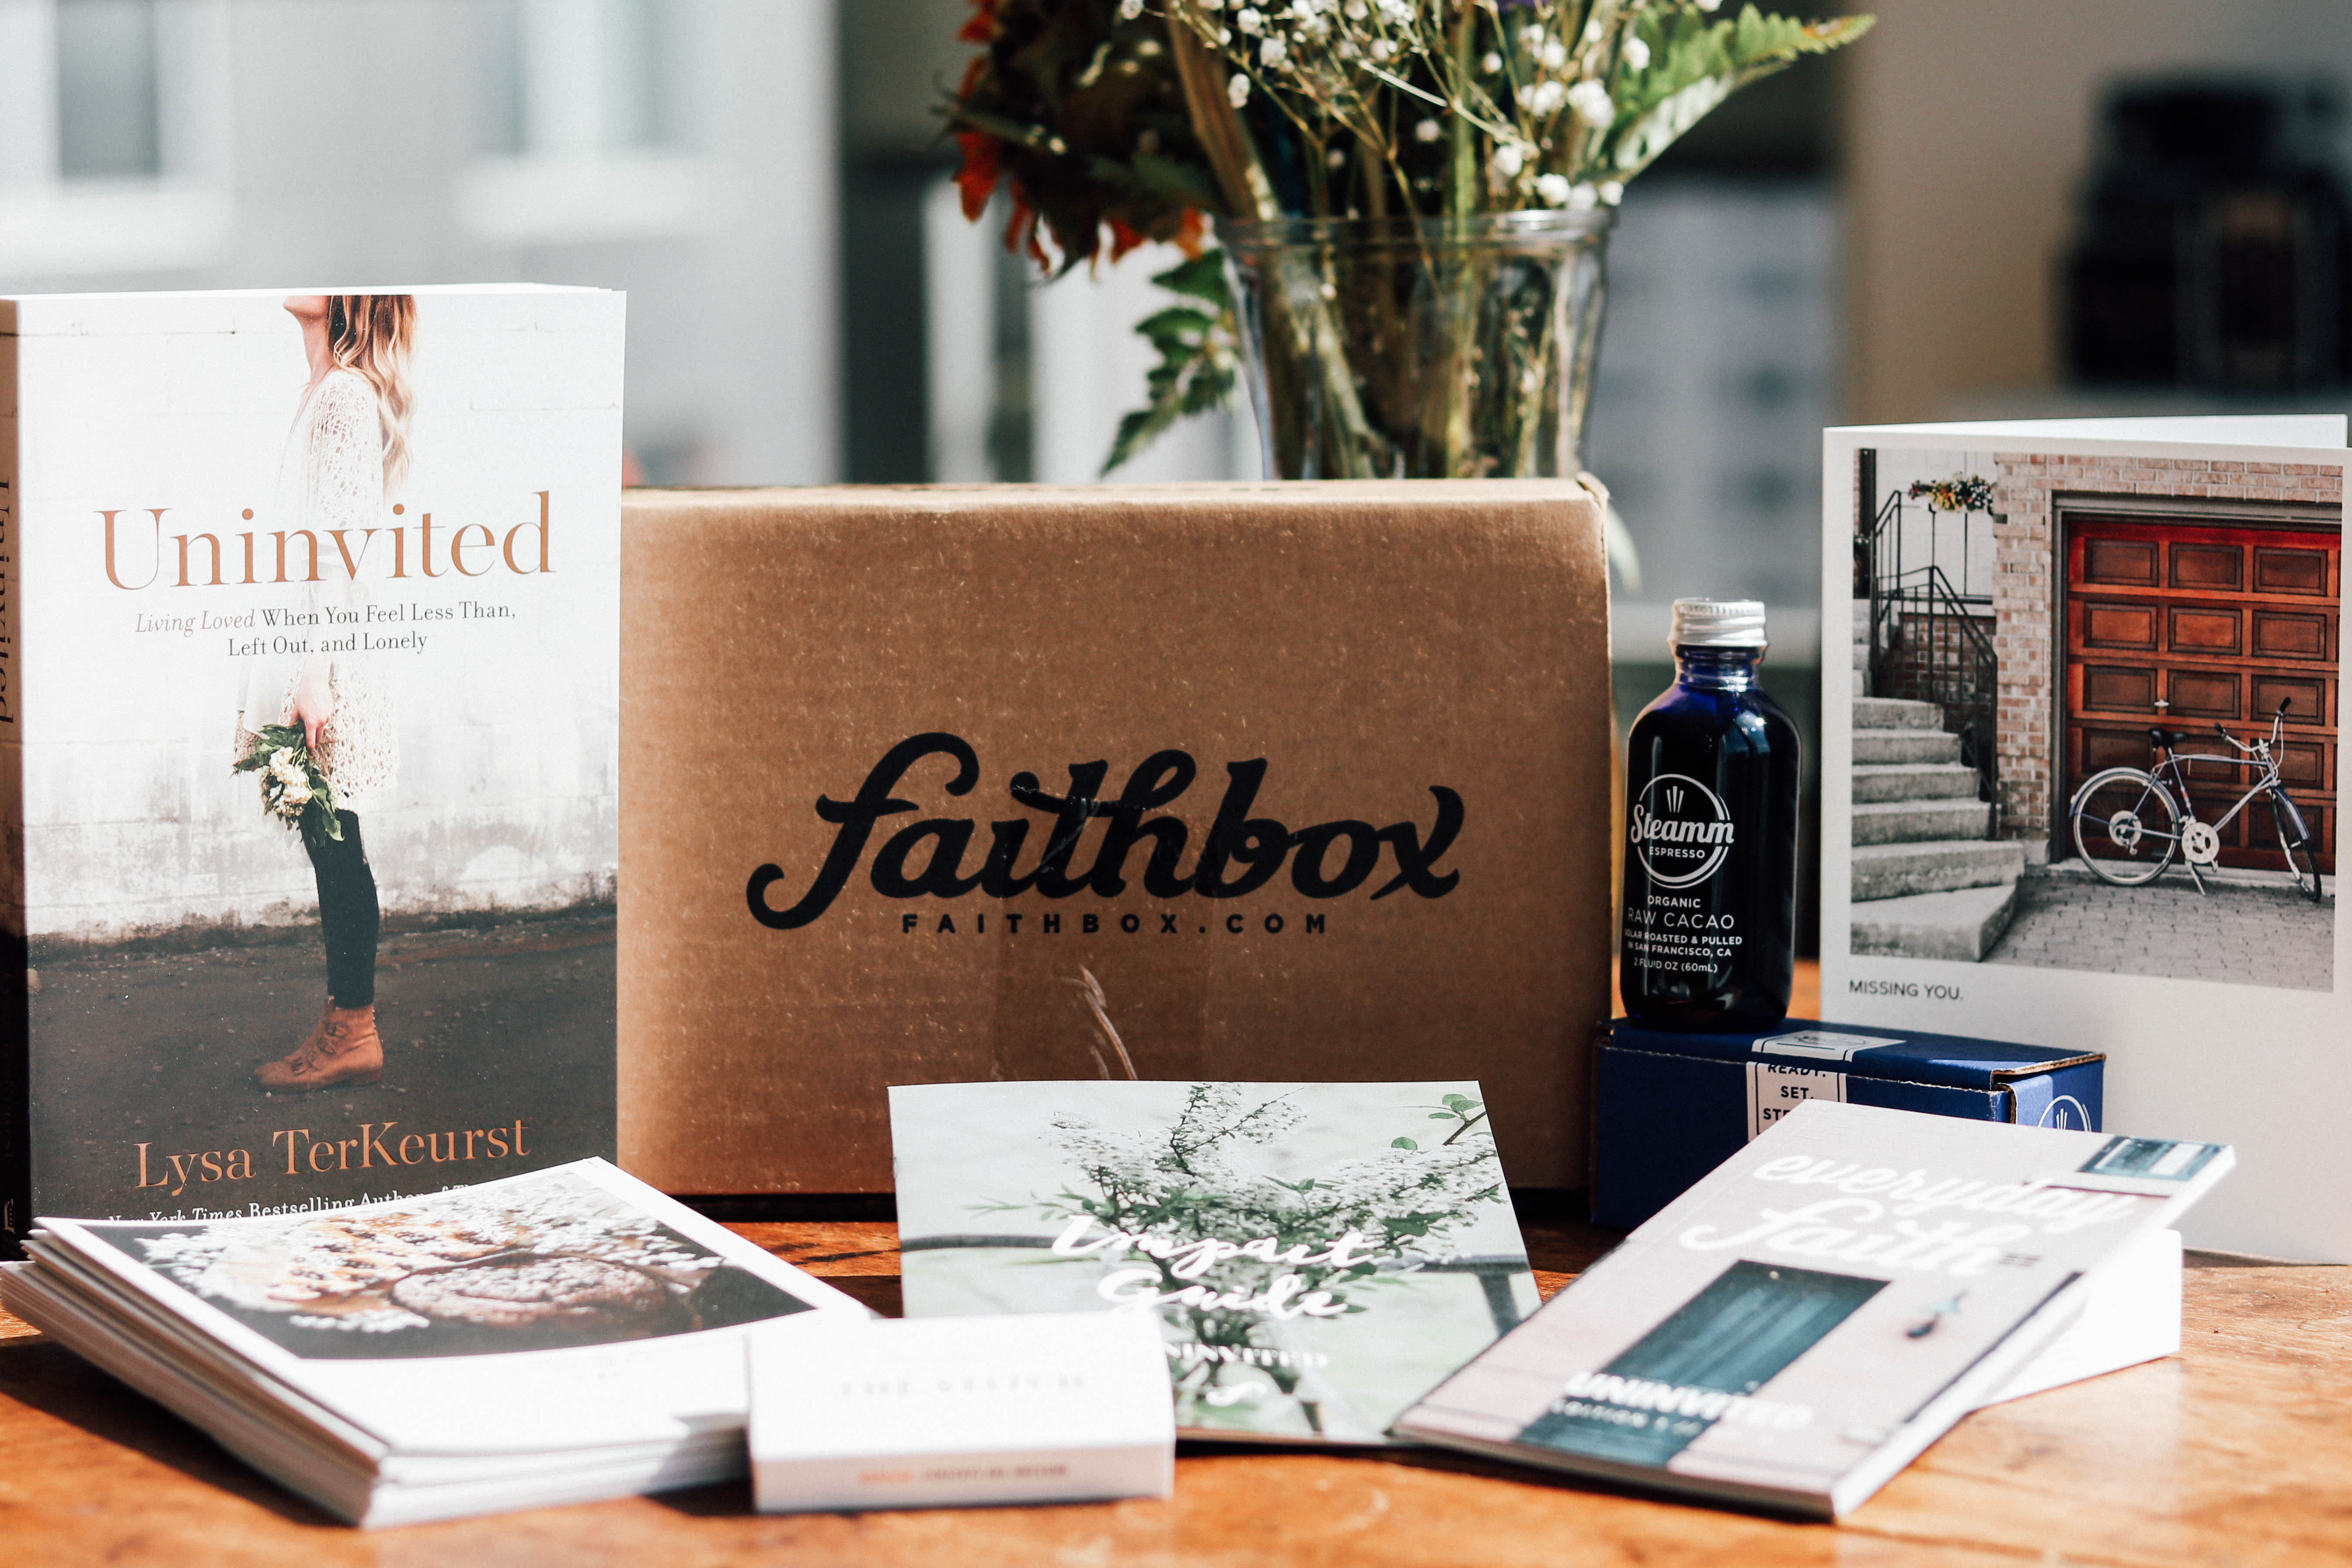 Faithbox Subscription